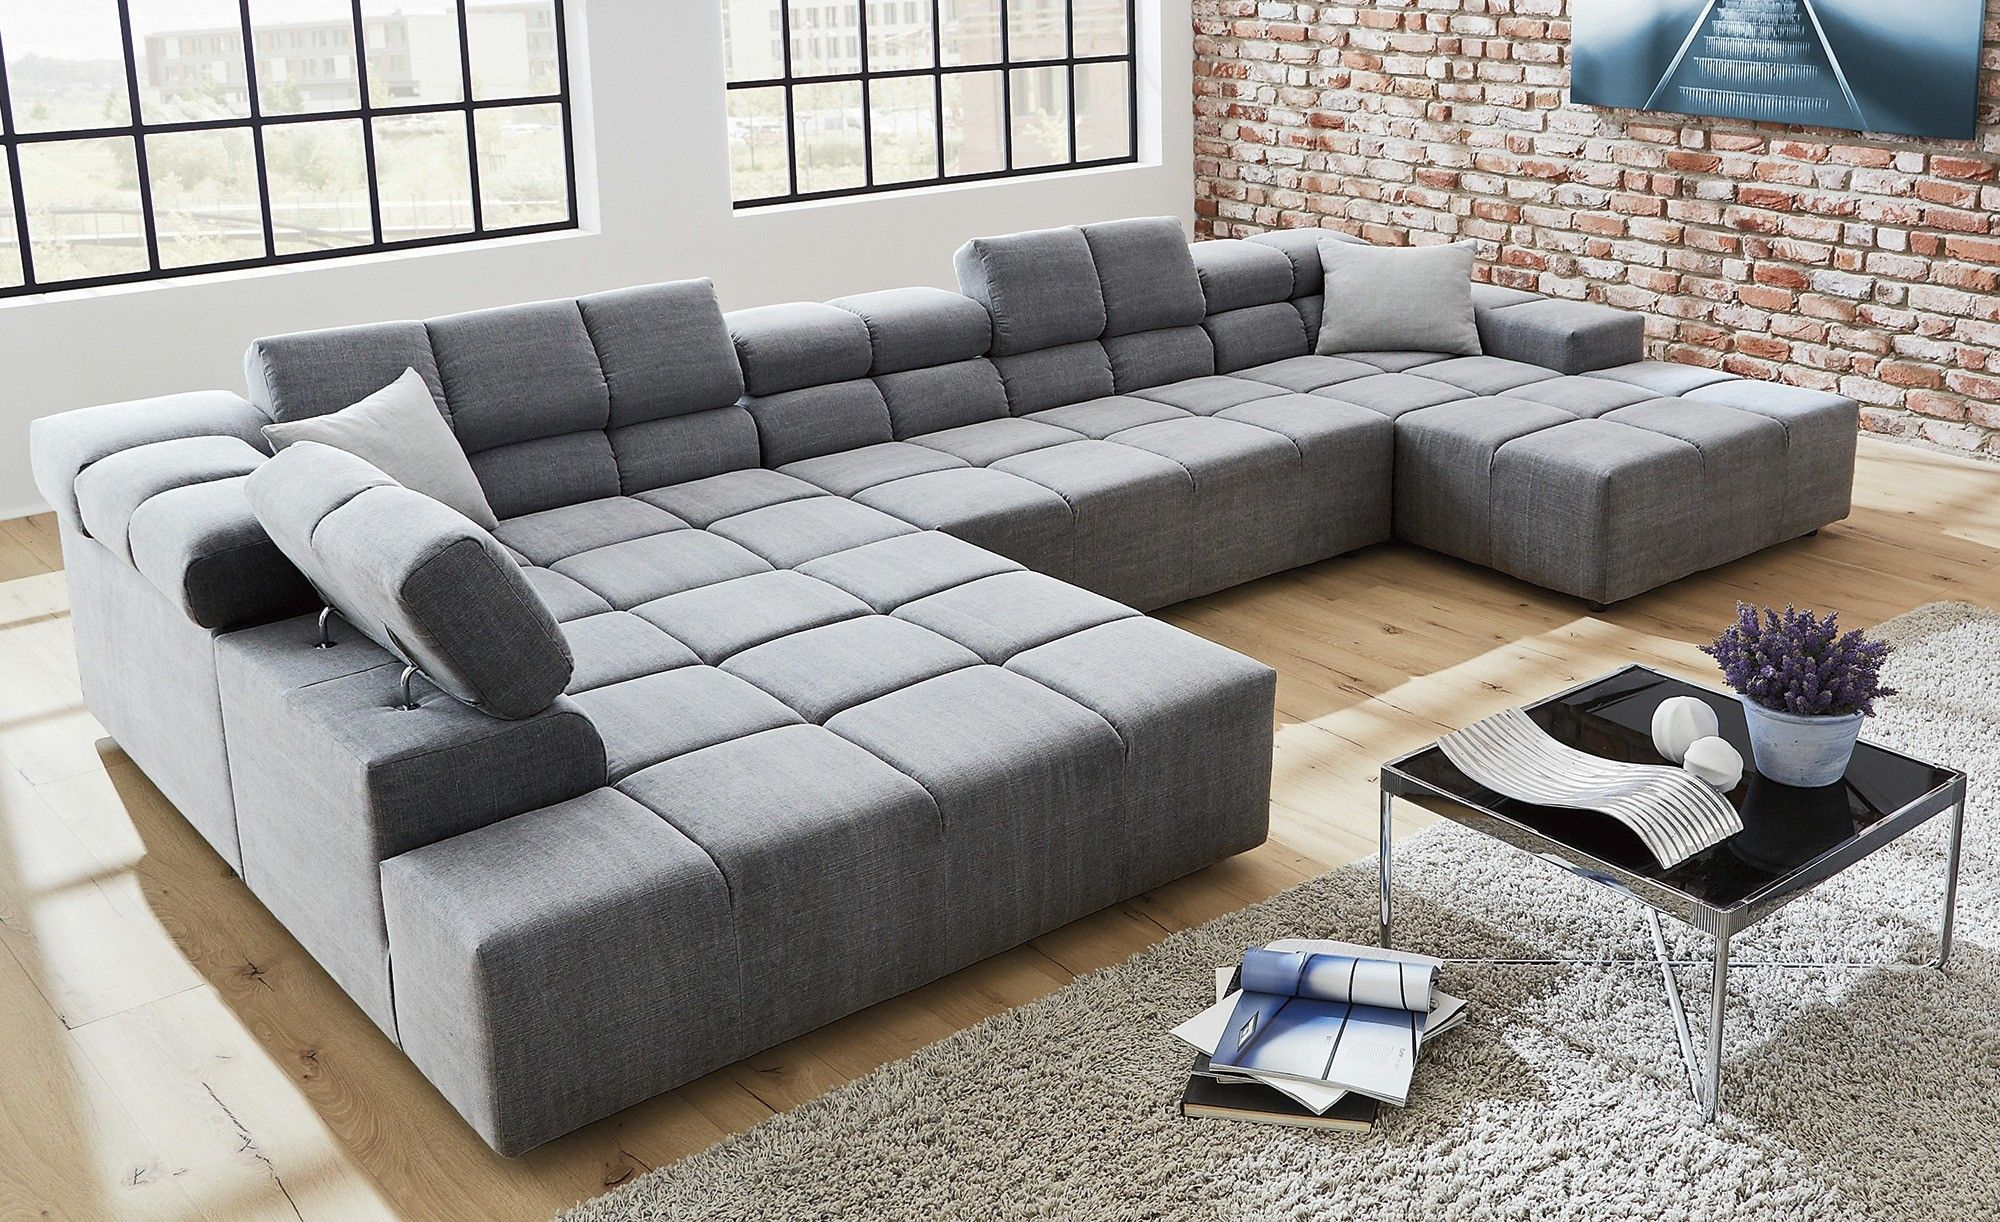 Big Sofa Ecksofa Schön Ecksofa Breit | Modern Bedroom Furniture, Big Sofas, Sofa Design